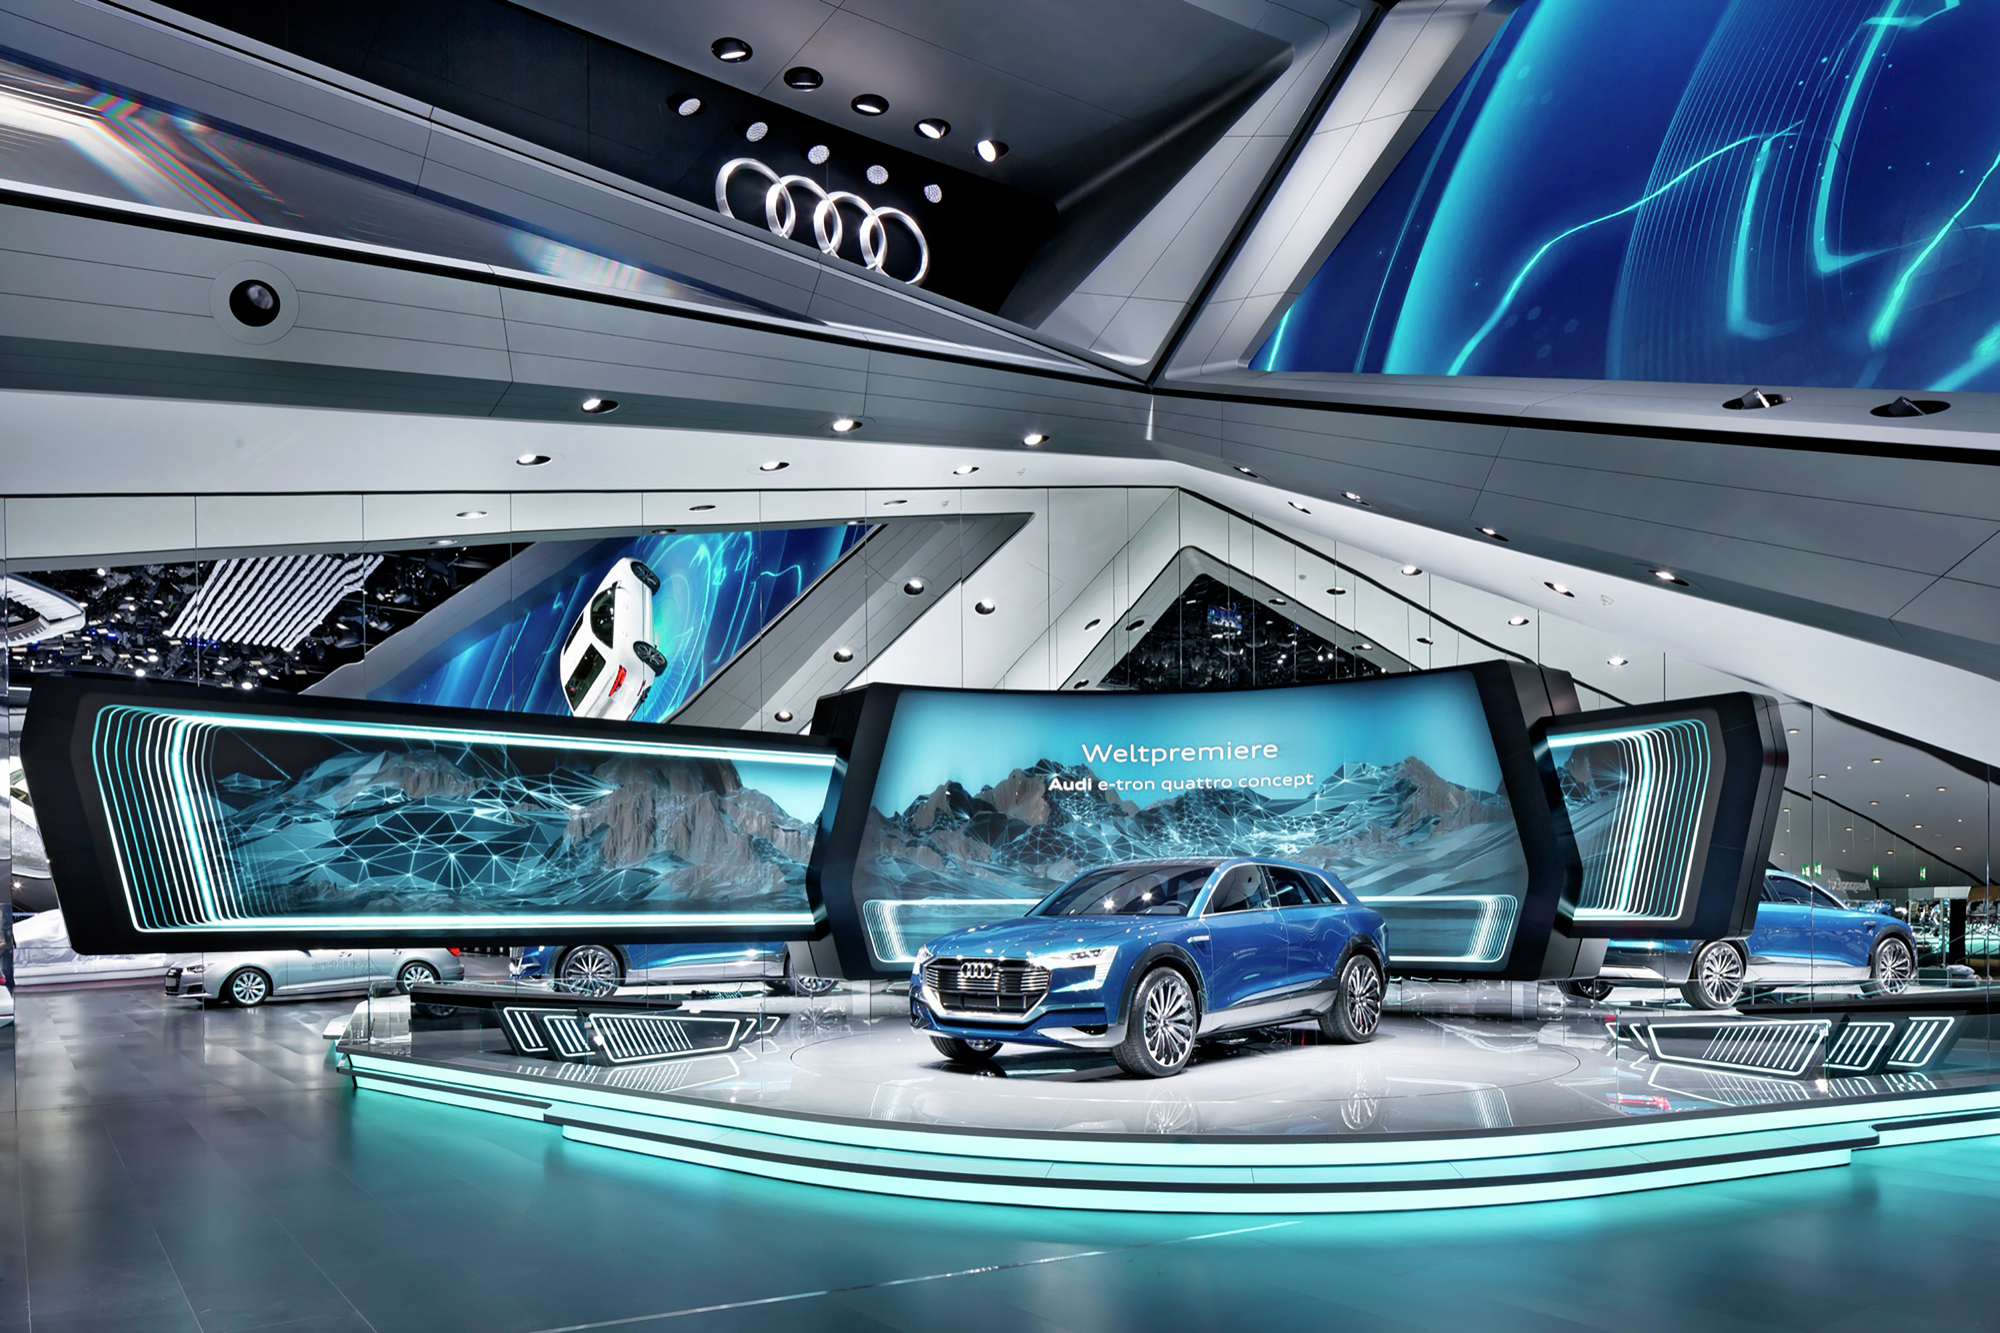 Car Expo Standsay : The stand of opel at the salon auto moto brussels expo this